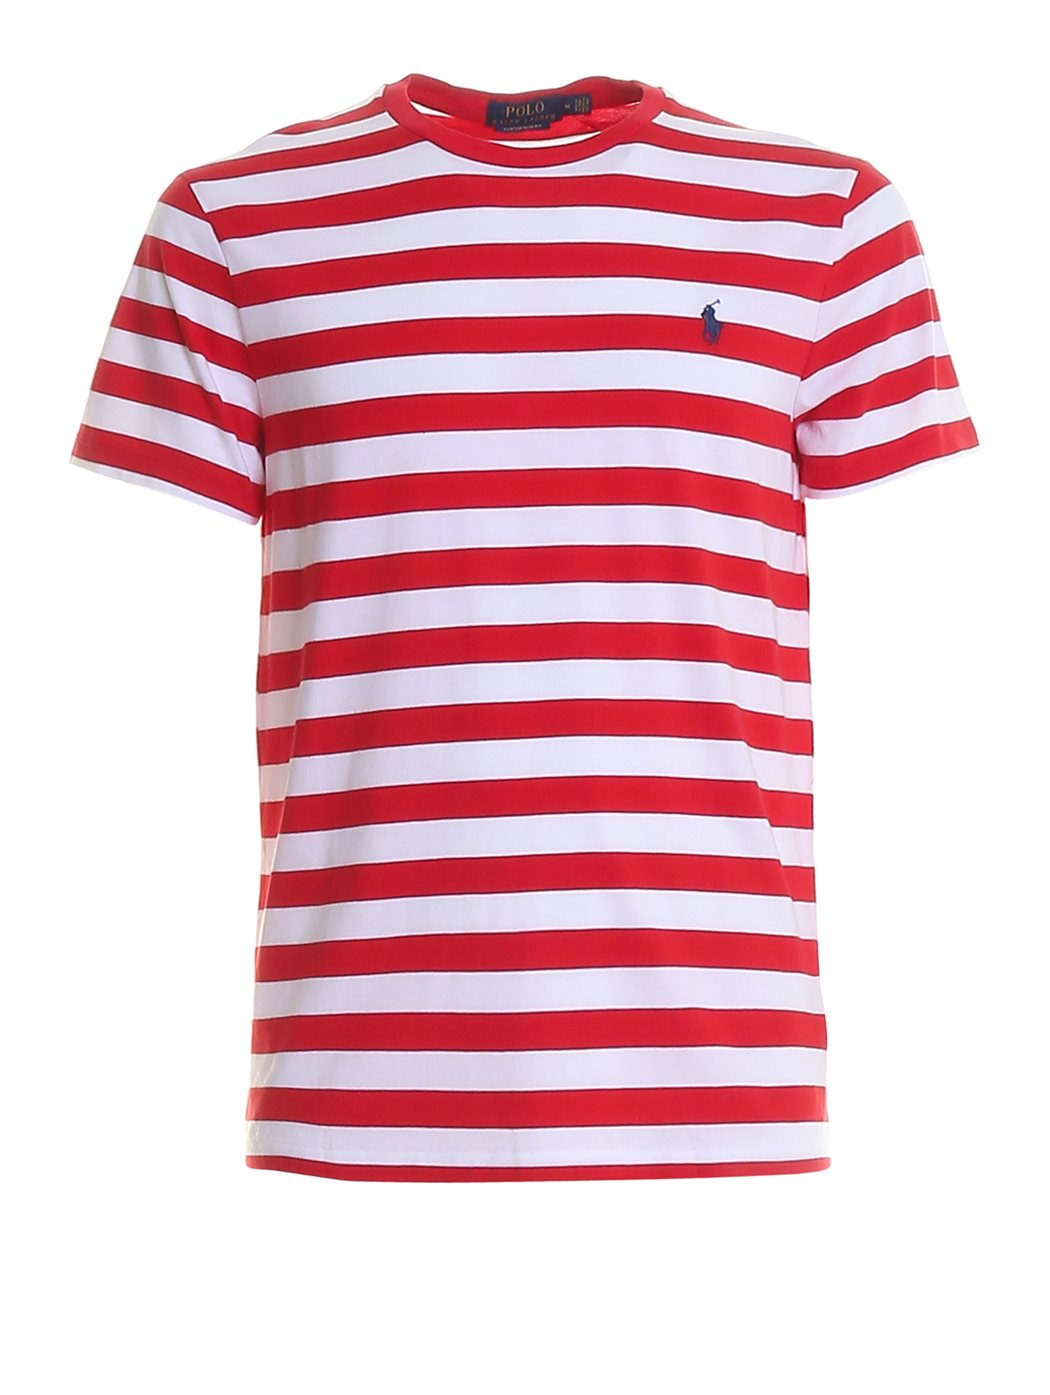 POLO RALPH LAUREN UOMO 71079 002 T-SHIRT